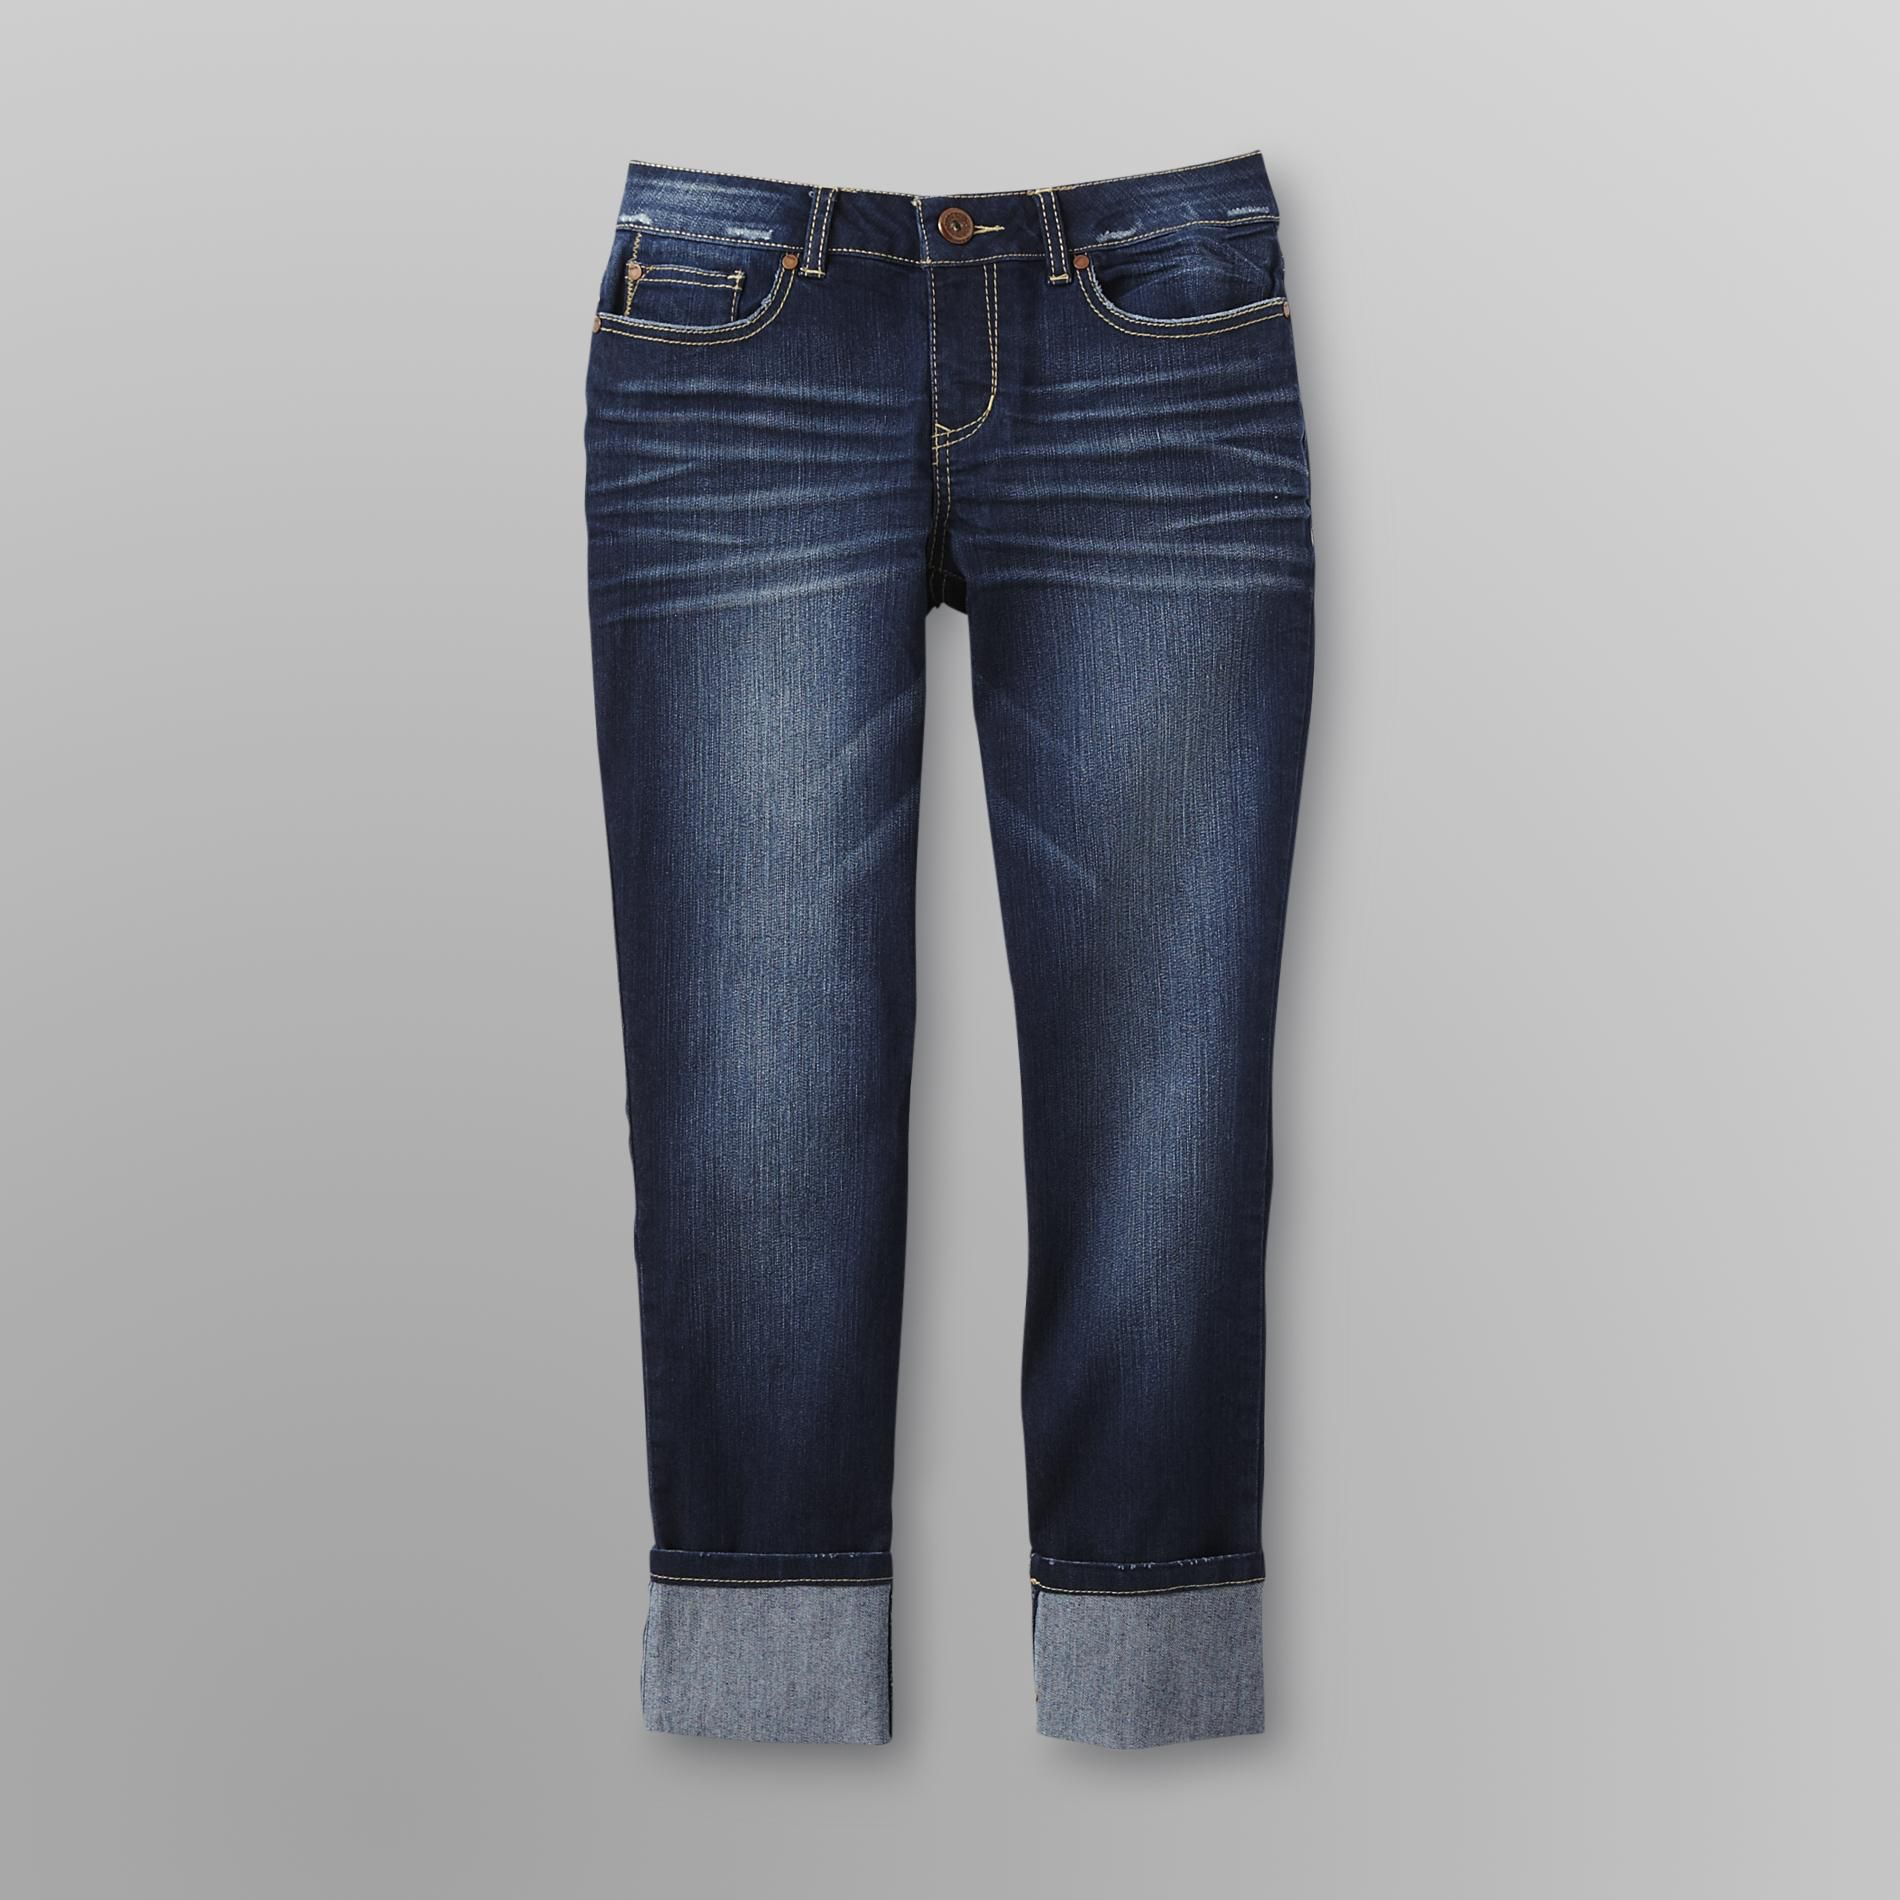 Route 66 Women's Roll Cuff Skinny Jeans at Kmart.com